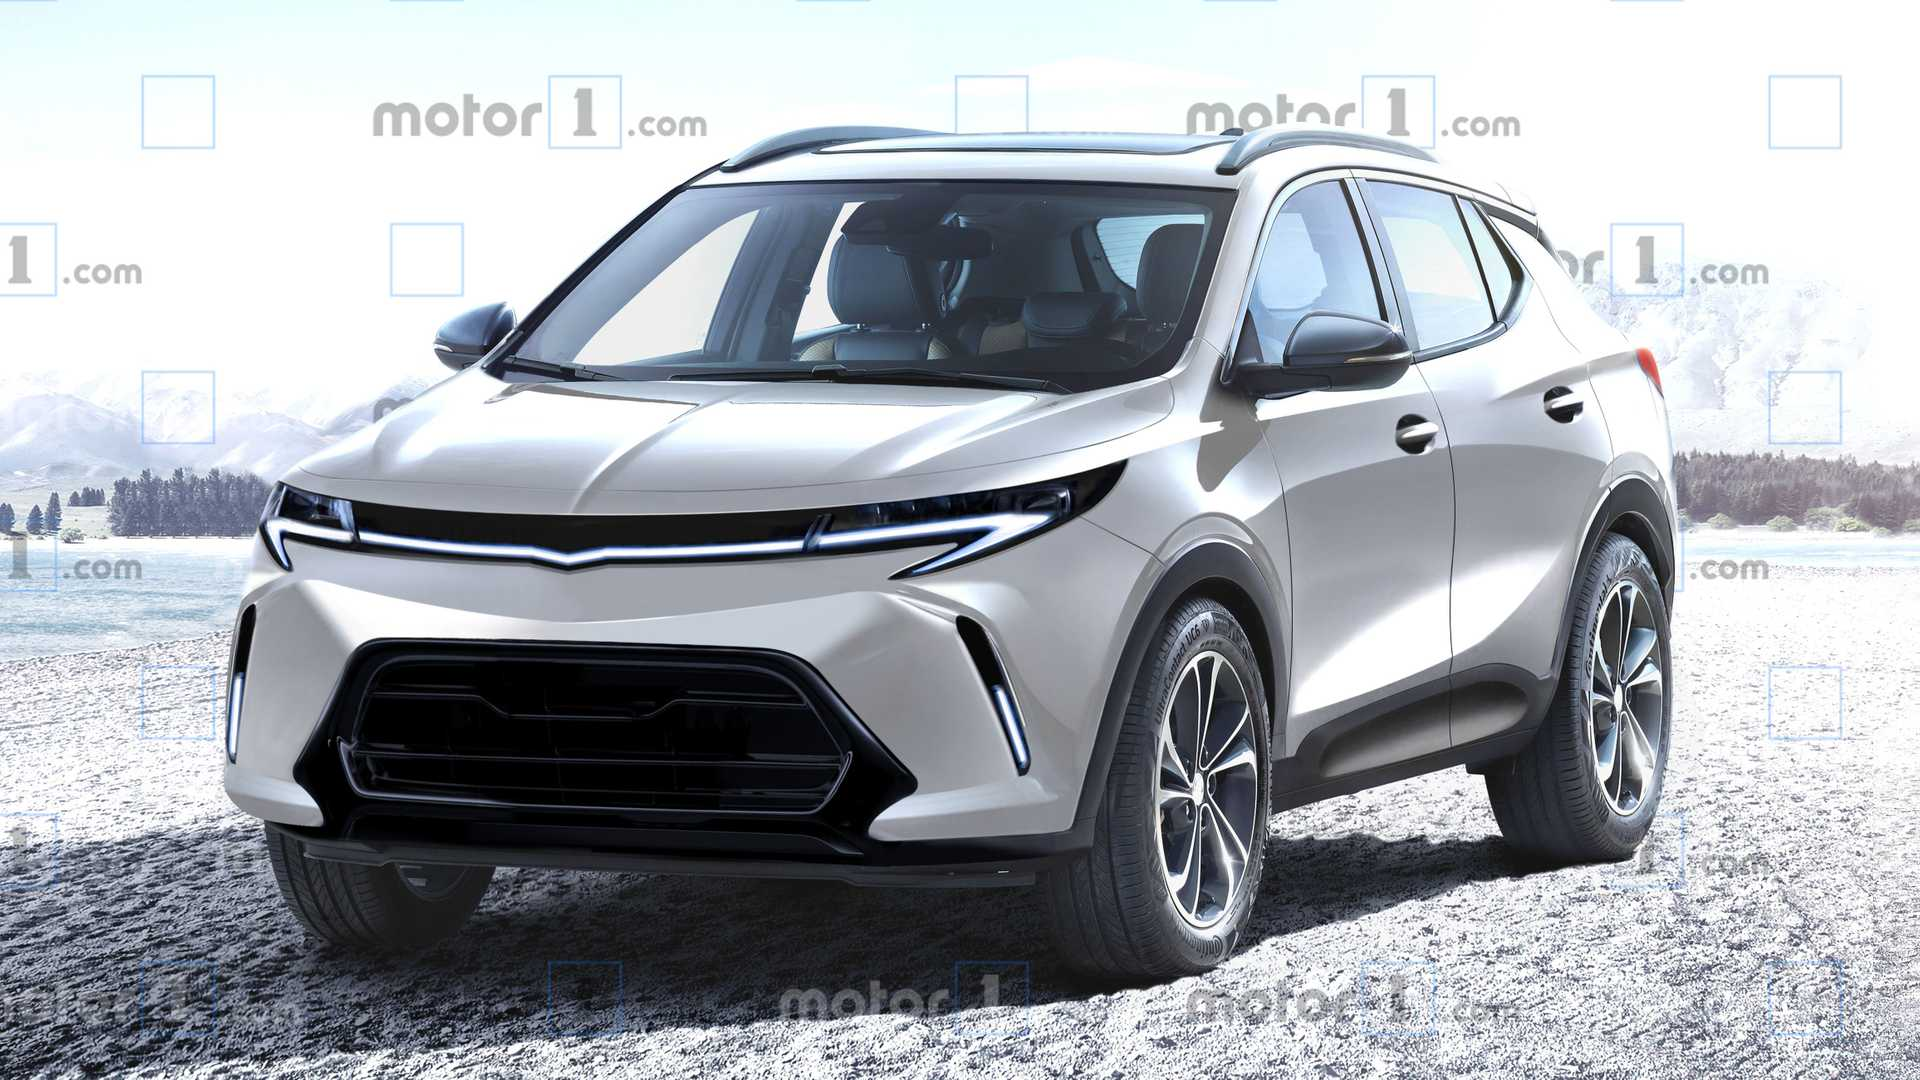 Refreshed Chevy Bolt Ev Coming Late 2020 Bolt Electric Crossover Mid 2021